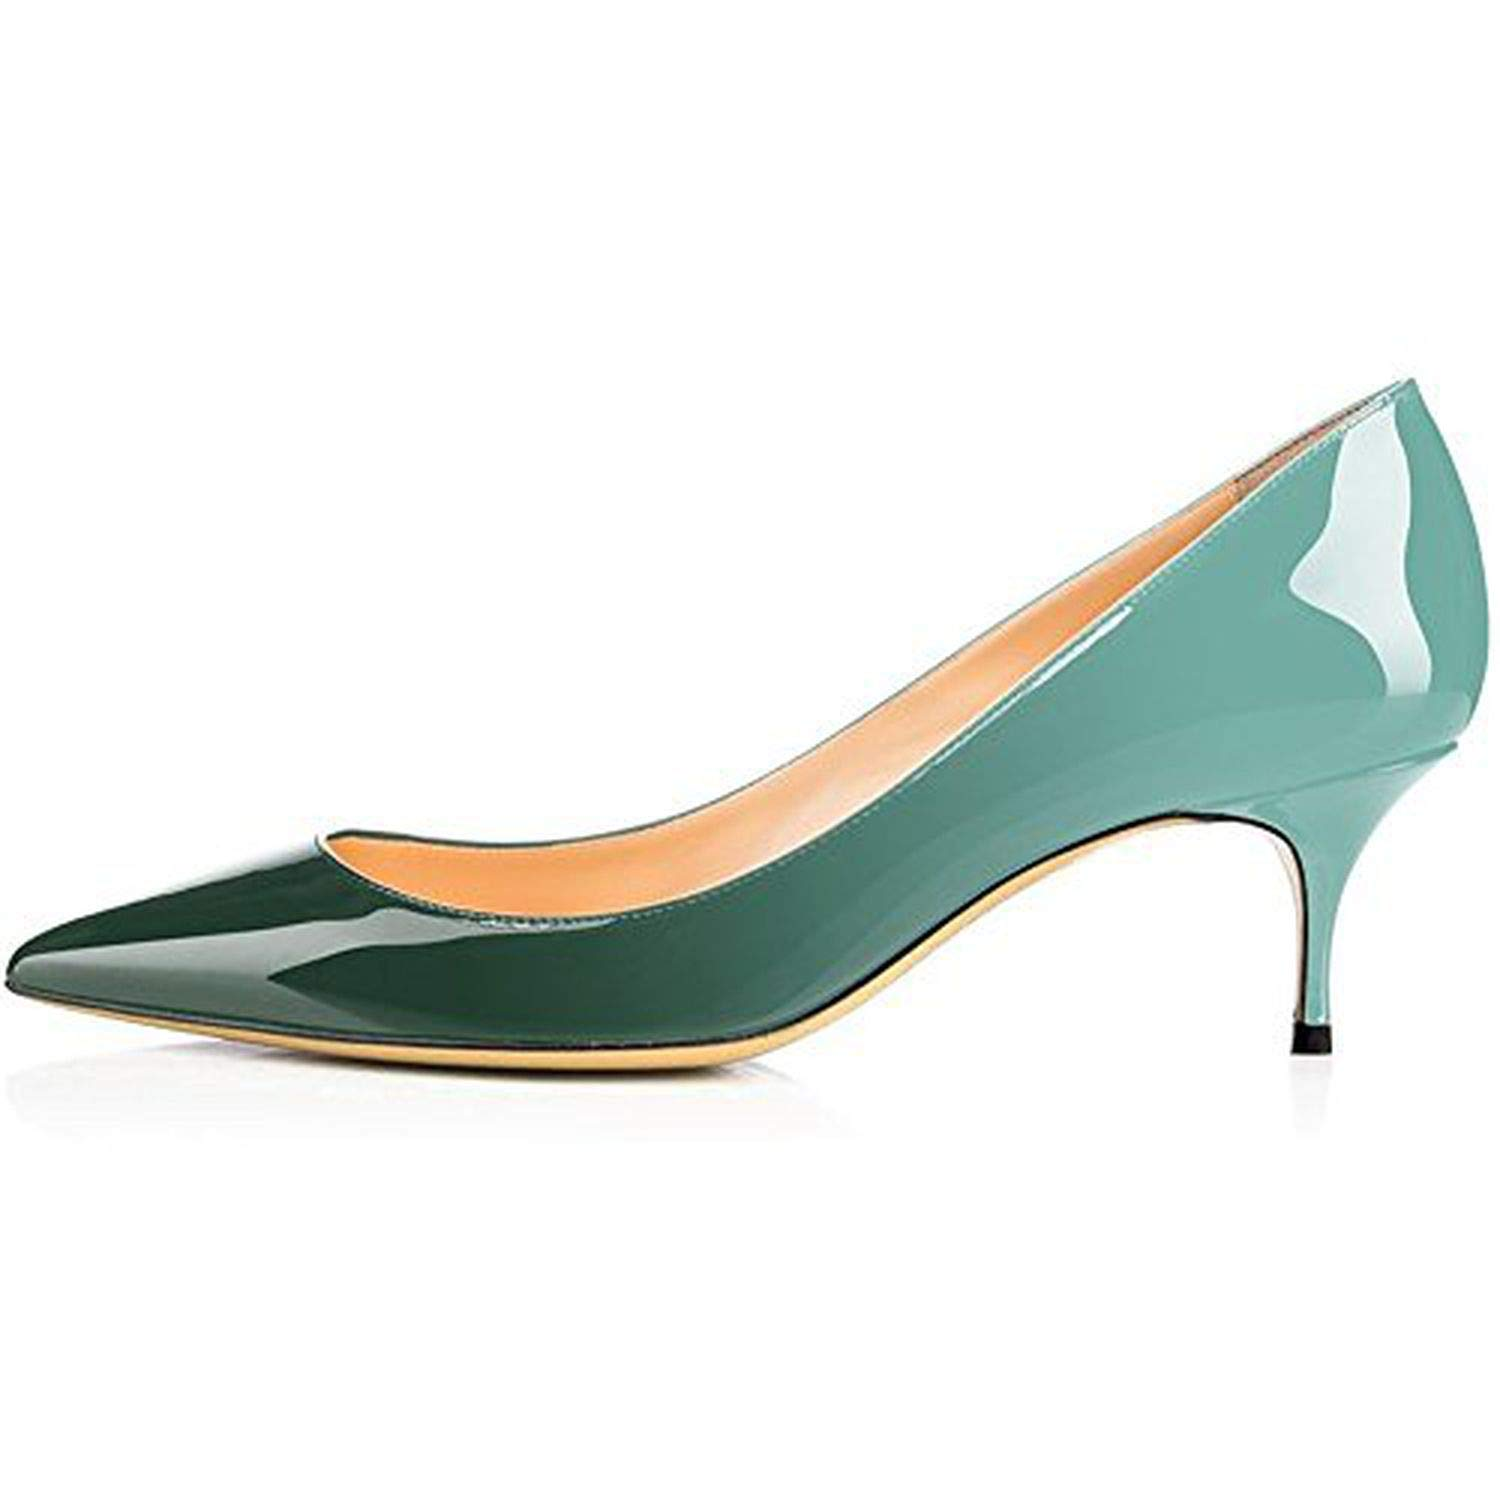 Green Youthern Woman Heels Big Size Pumps shoes Sexy Pointed Toe High Heels Wedding Bridal shoes